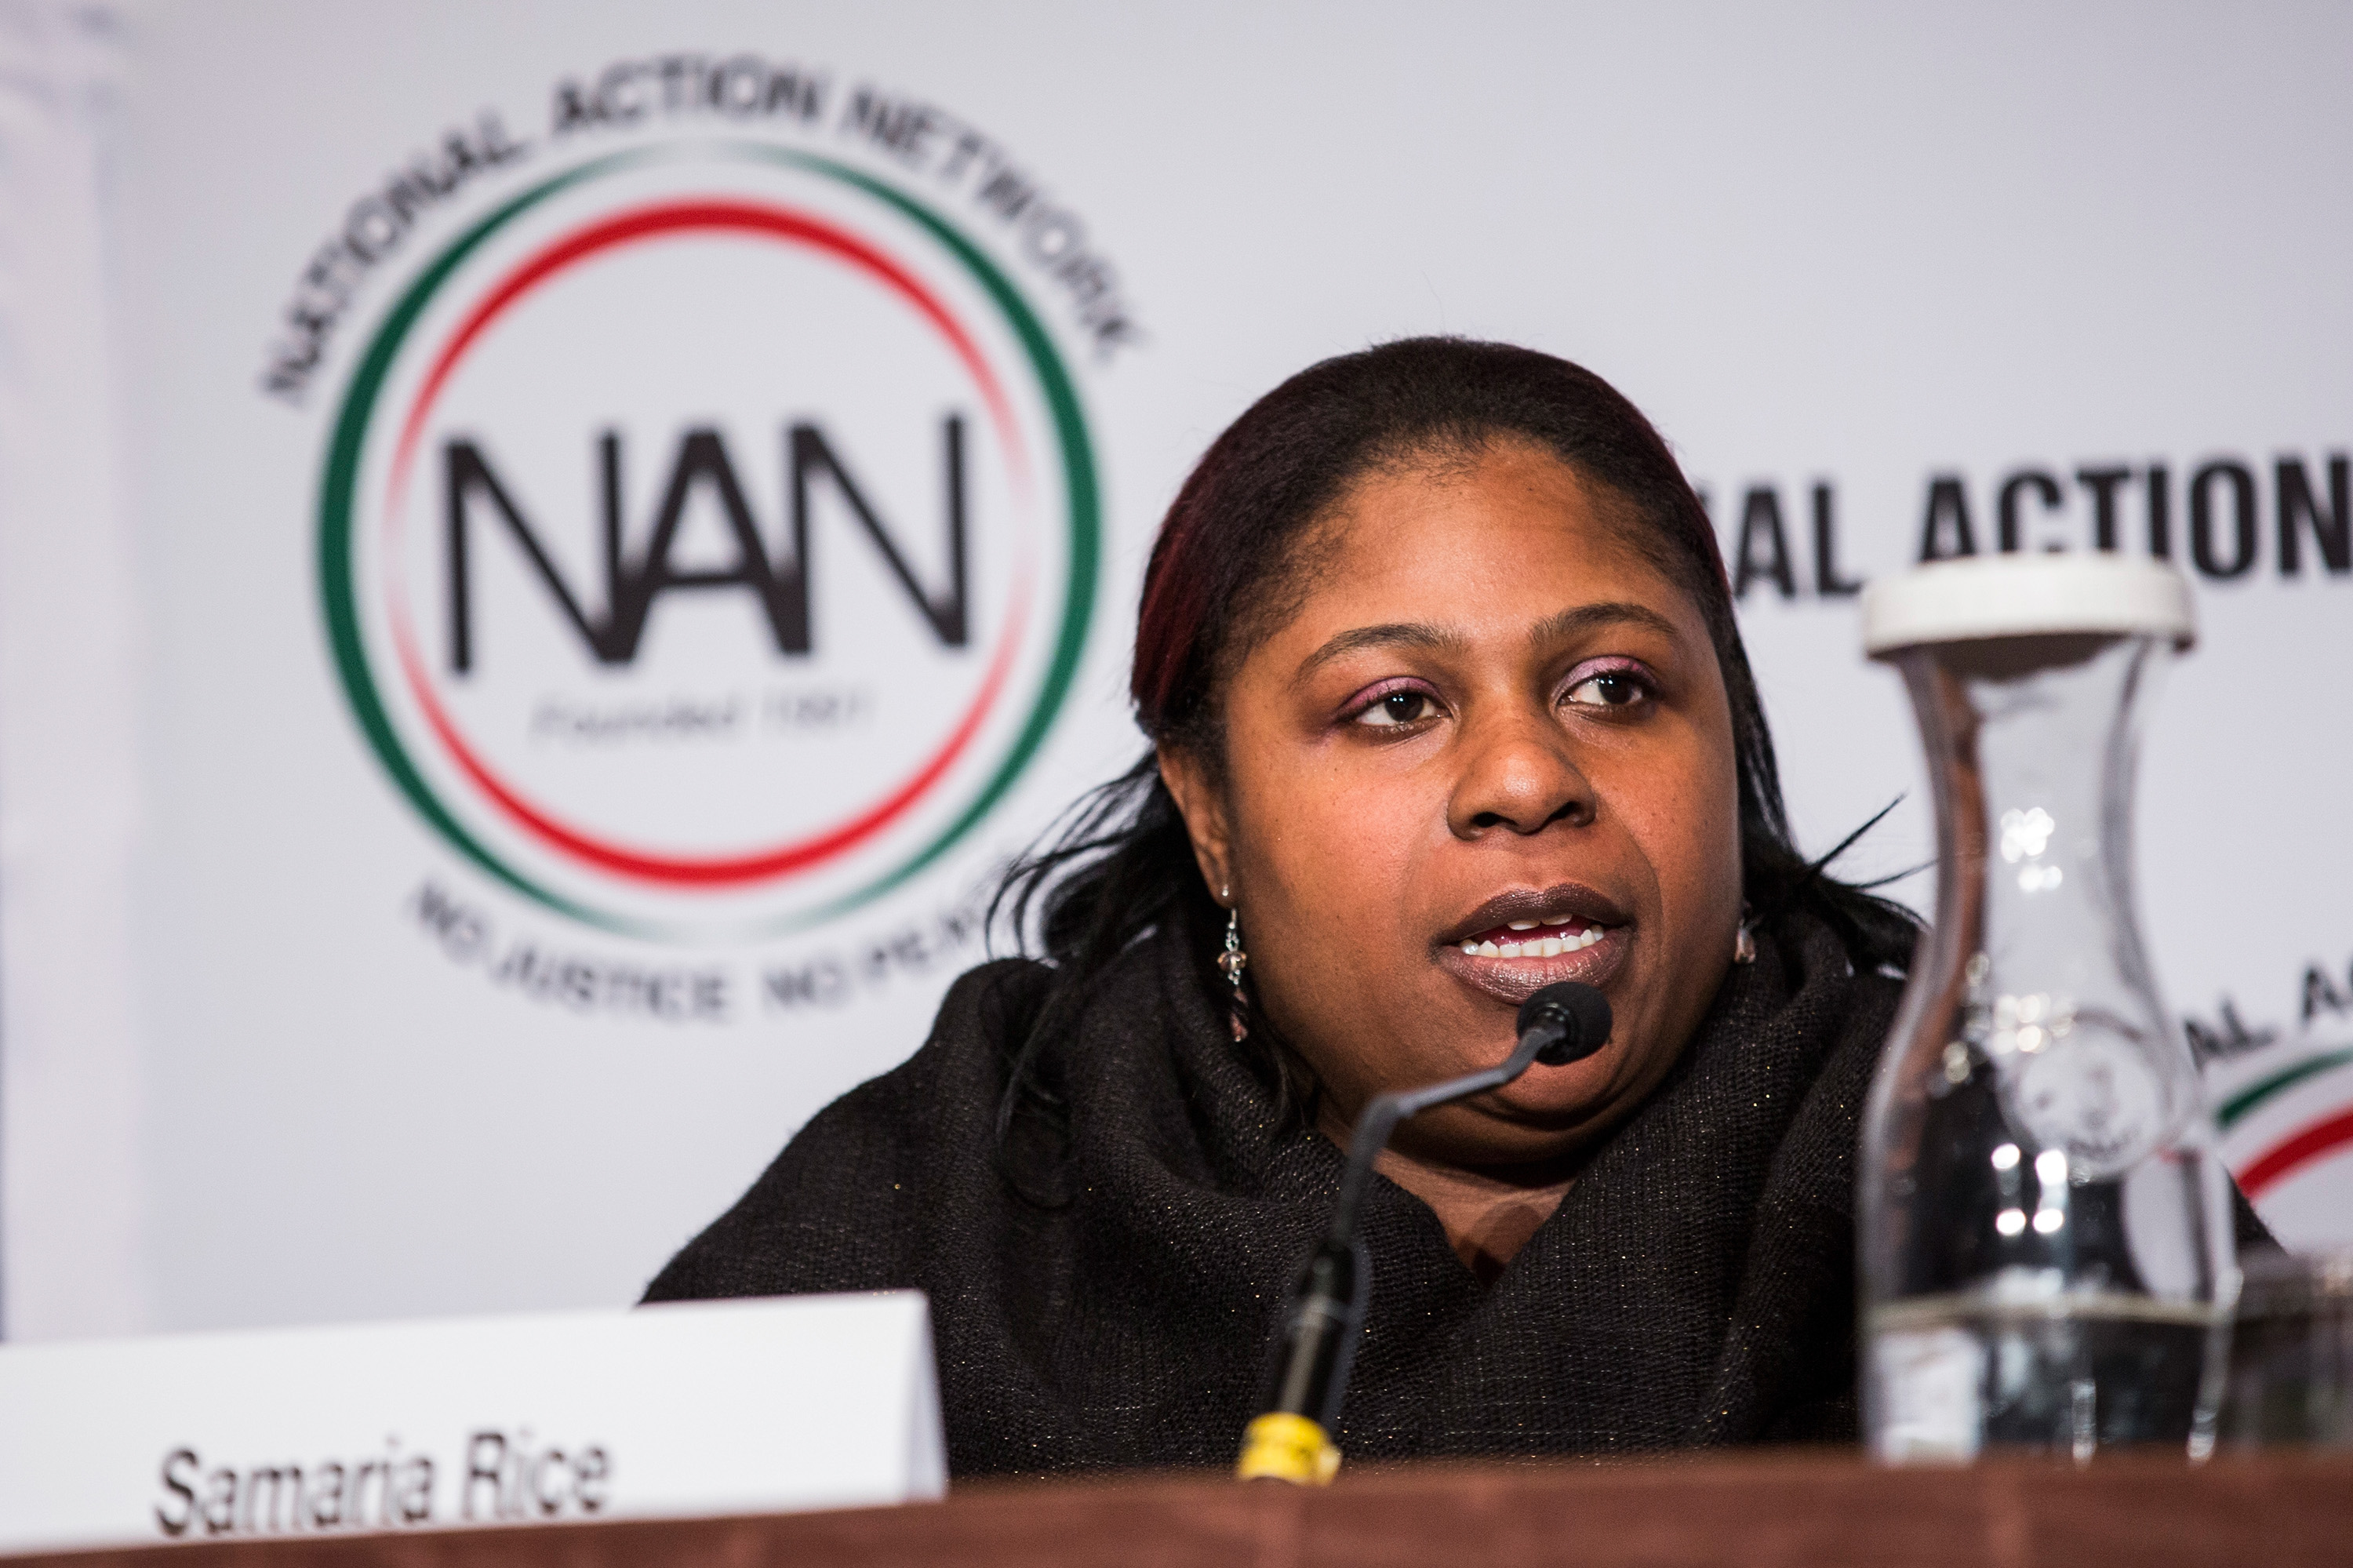 Samaria Rice, mother of Tamir Rice- who was shot to death by a police officer - speak on a panel titled  The Impact of Police Brutality - The Victims Speak  at the National Action Network (NAN) national convention on April 8, 2015 in New York City. Andrew Burton—Getty Images